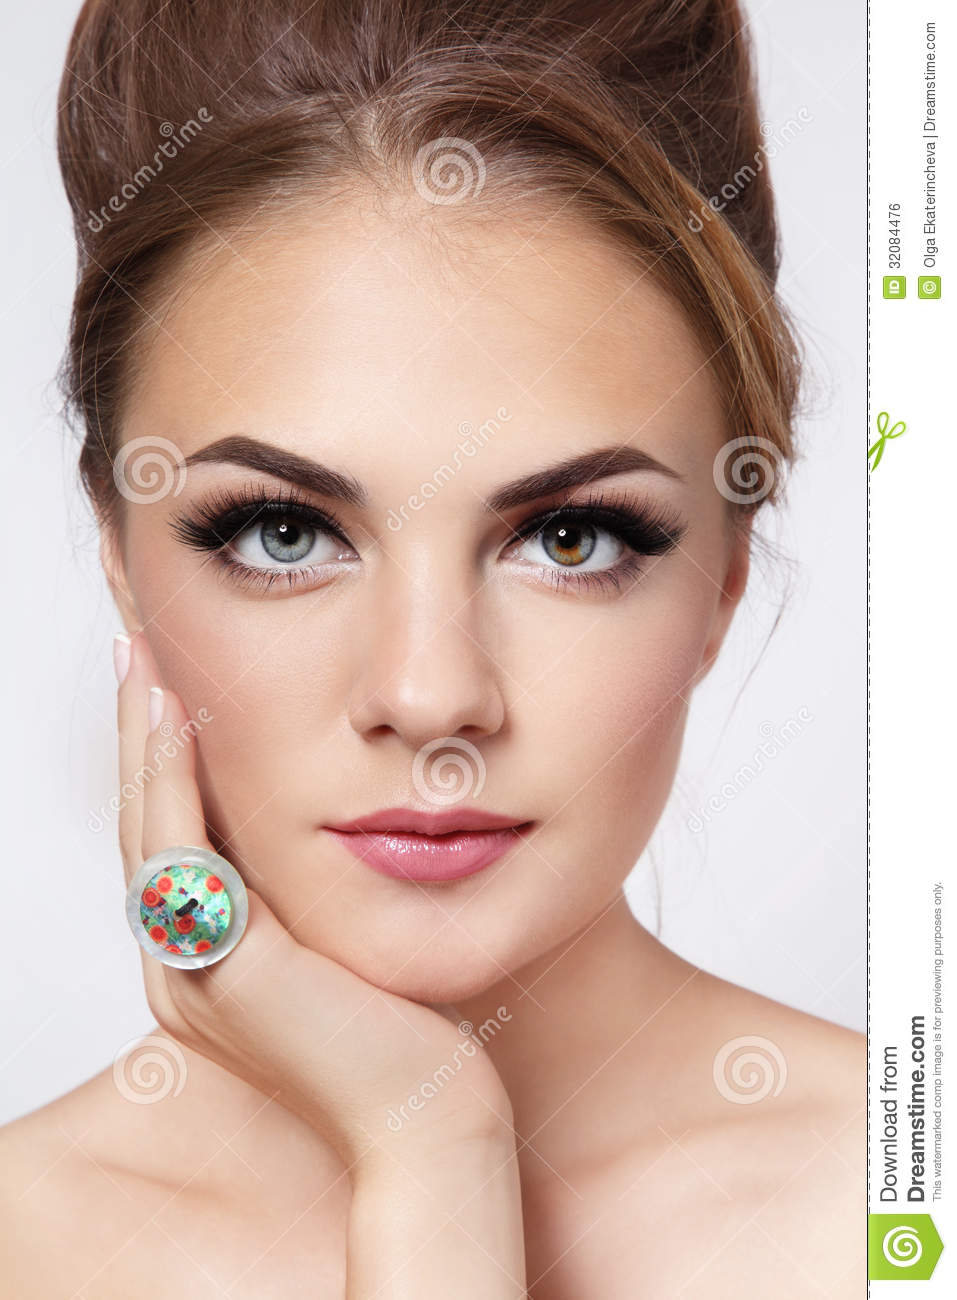 Pretty Girl With Cat Eyes Royalty Free Stock Image - Image ...